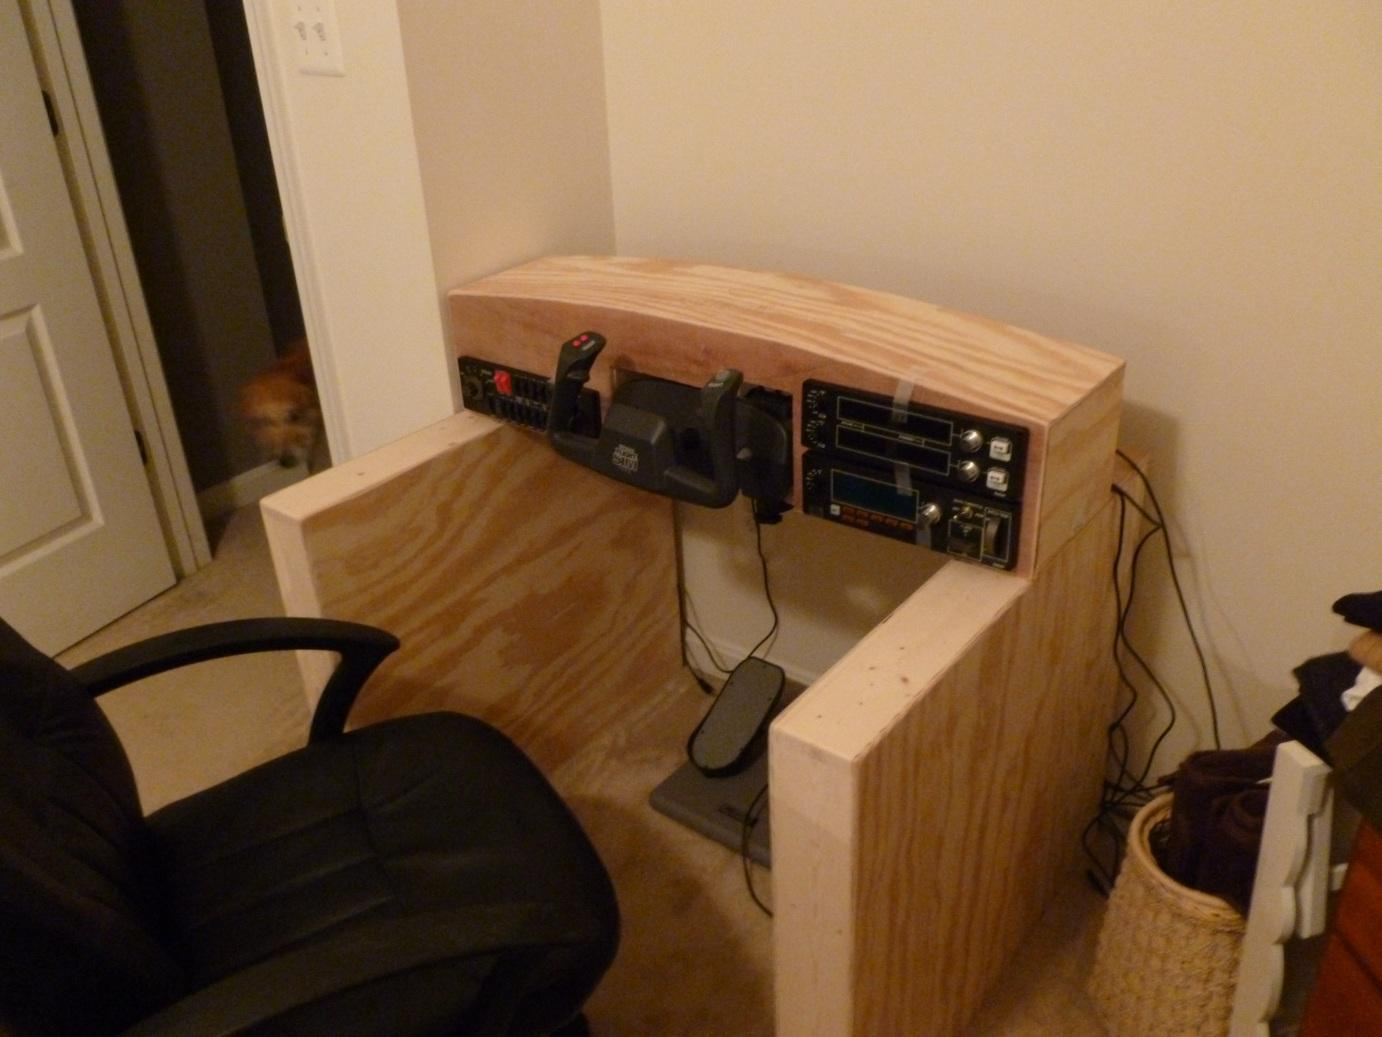 Where To Get Keys Made Near Me >> The wife finally let me build my simpit - SimHQ Forums